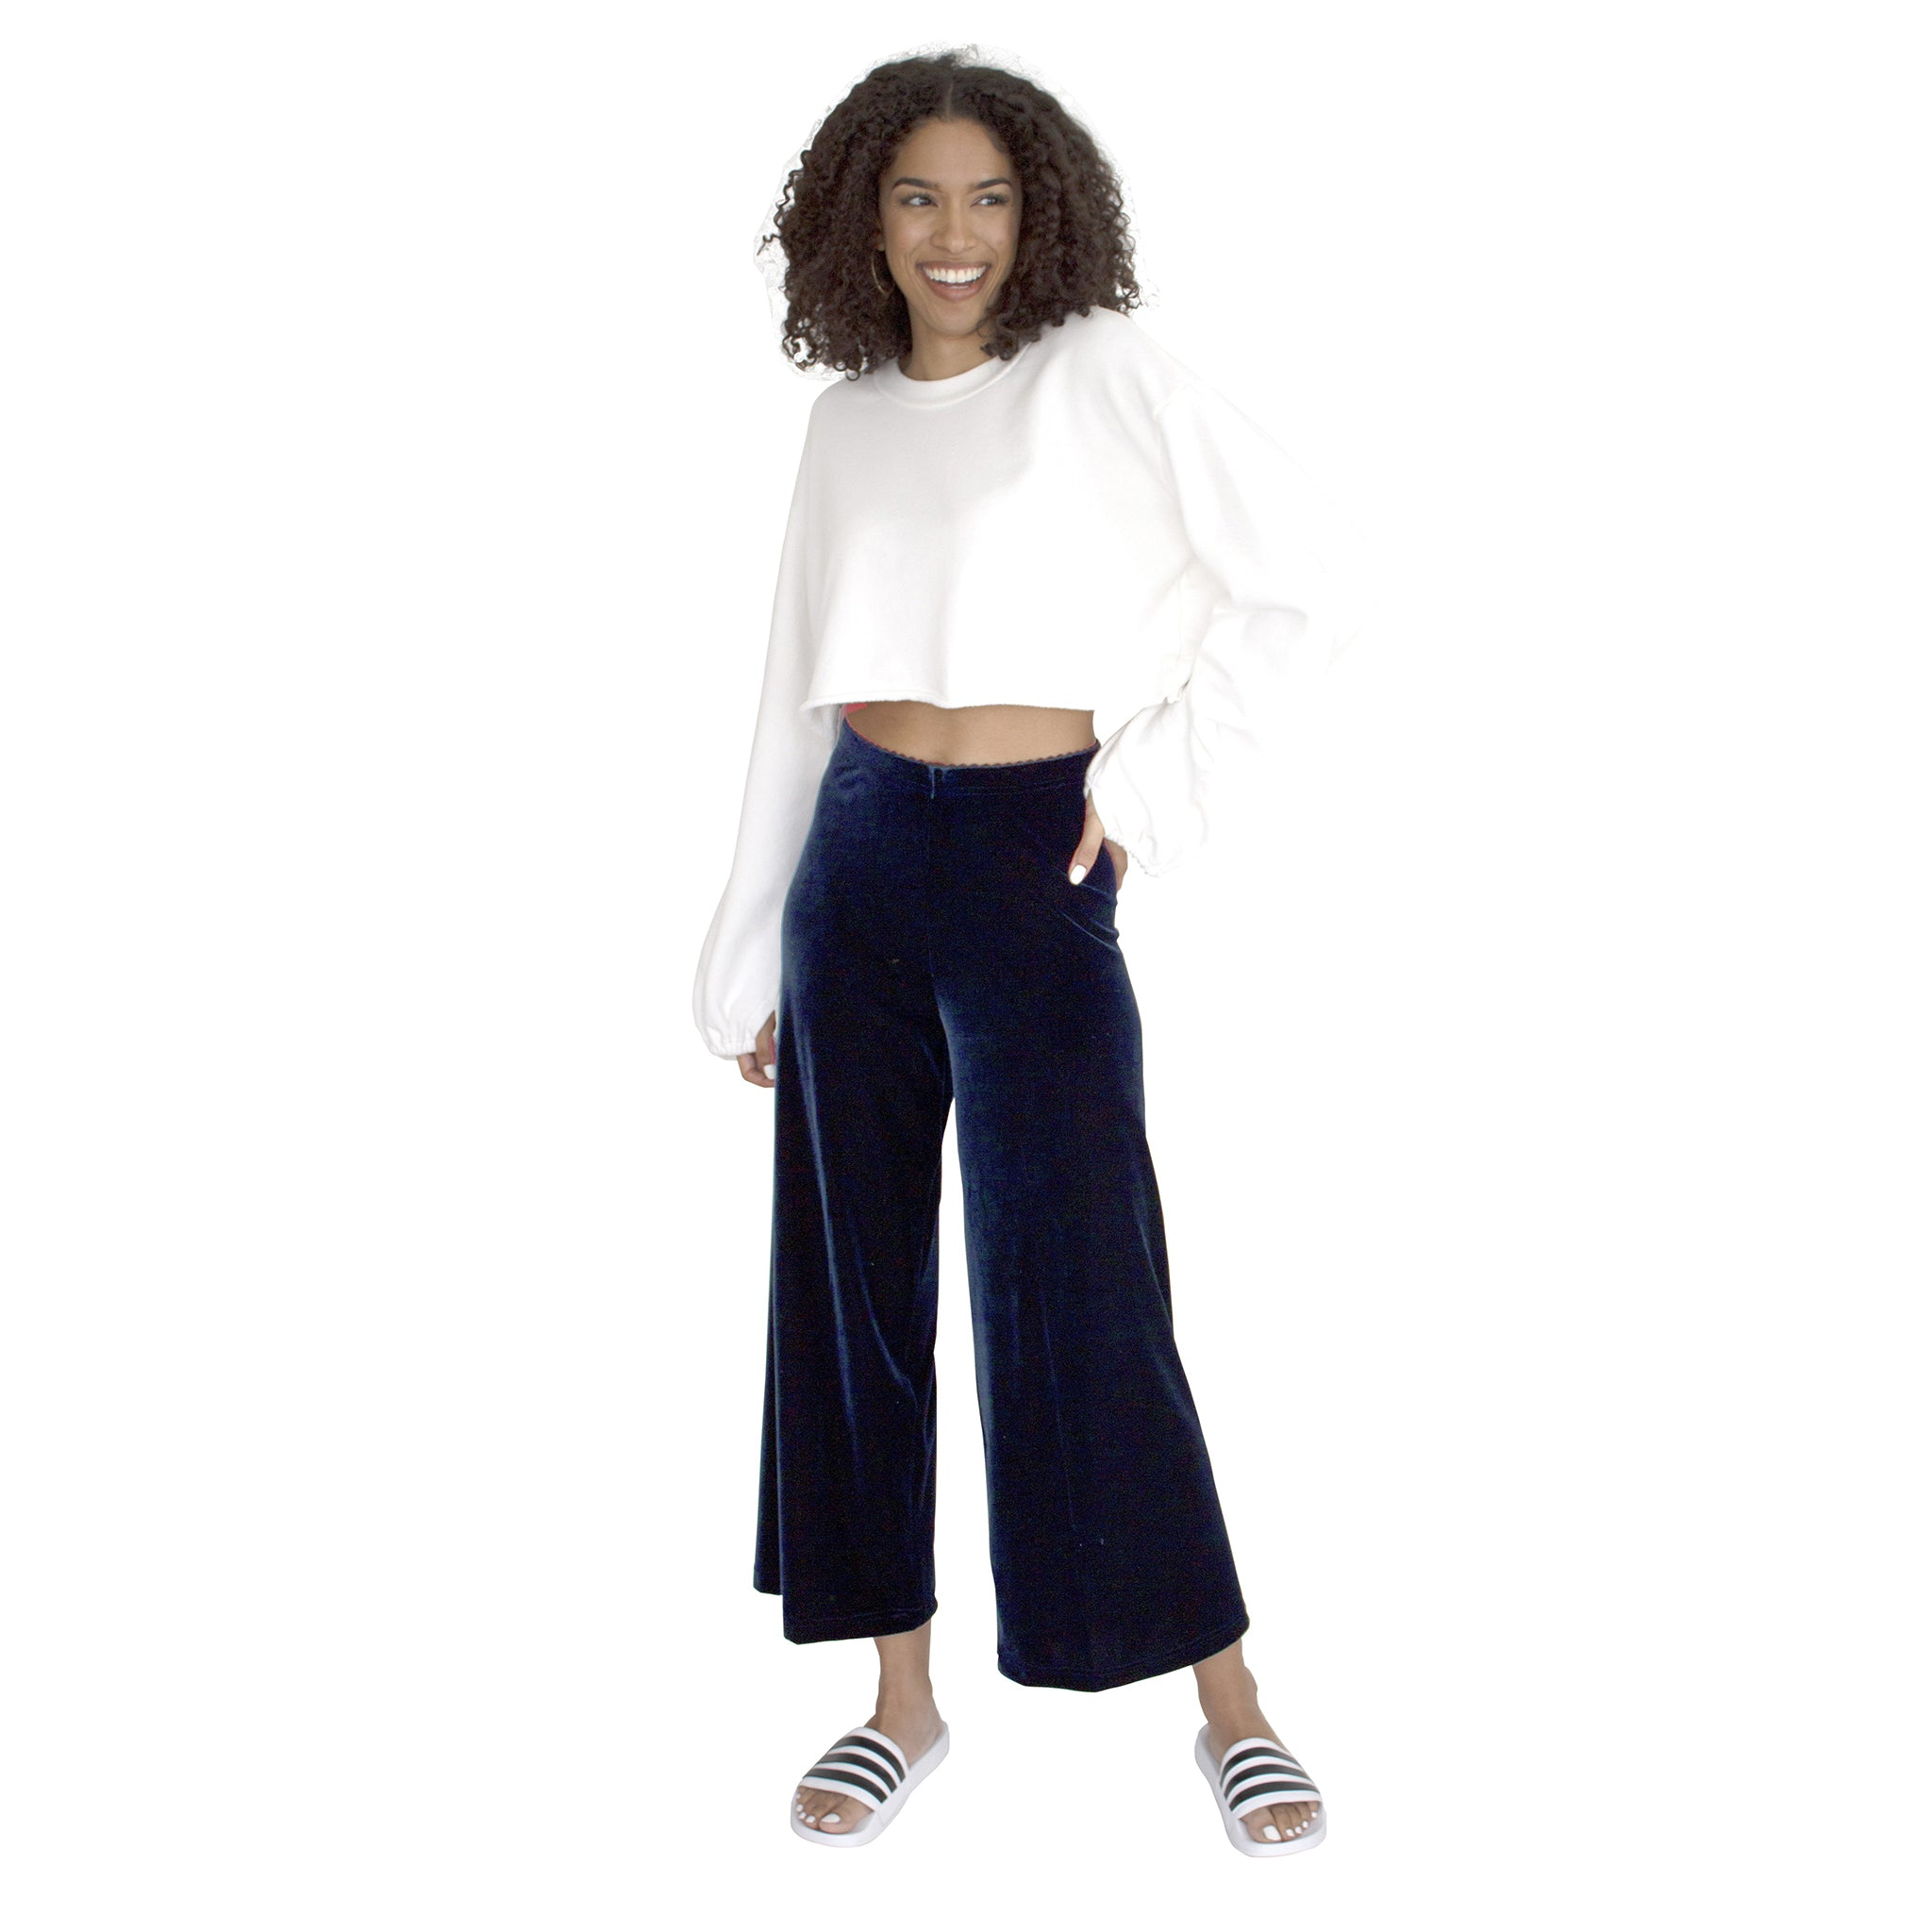 "Cropped Length Stretch Velvet Pant in Sapphire (Dark Blue) has elastic waist and 26"" inseam."